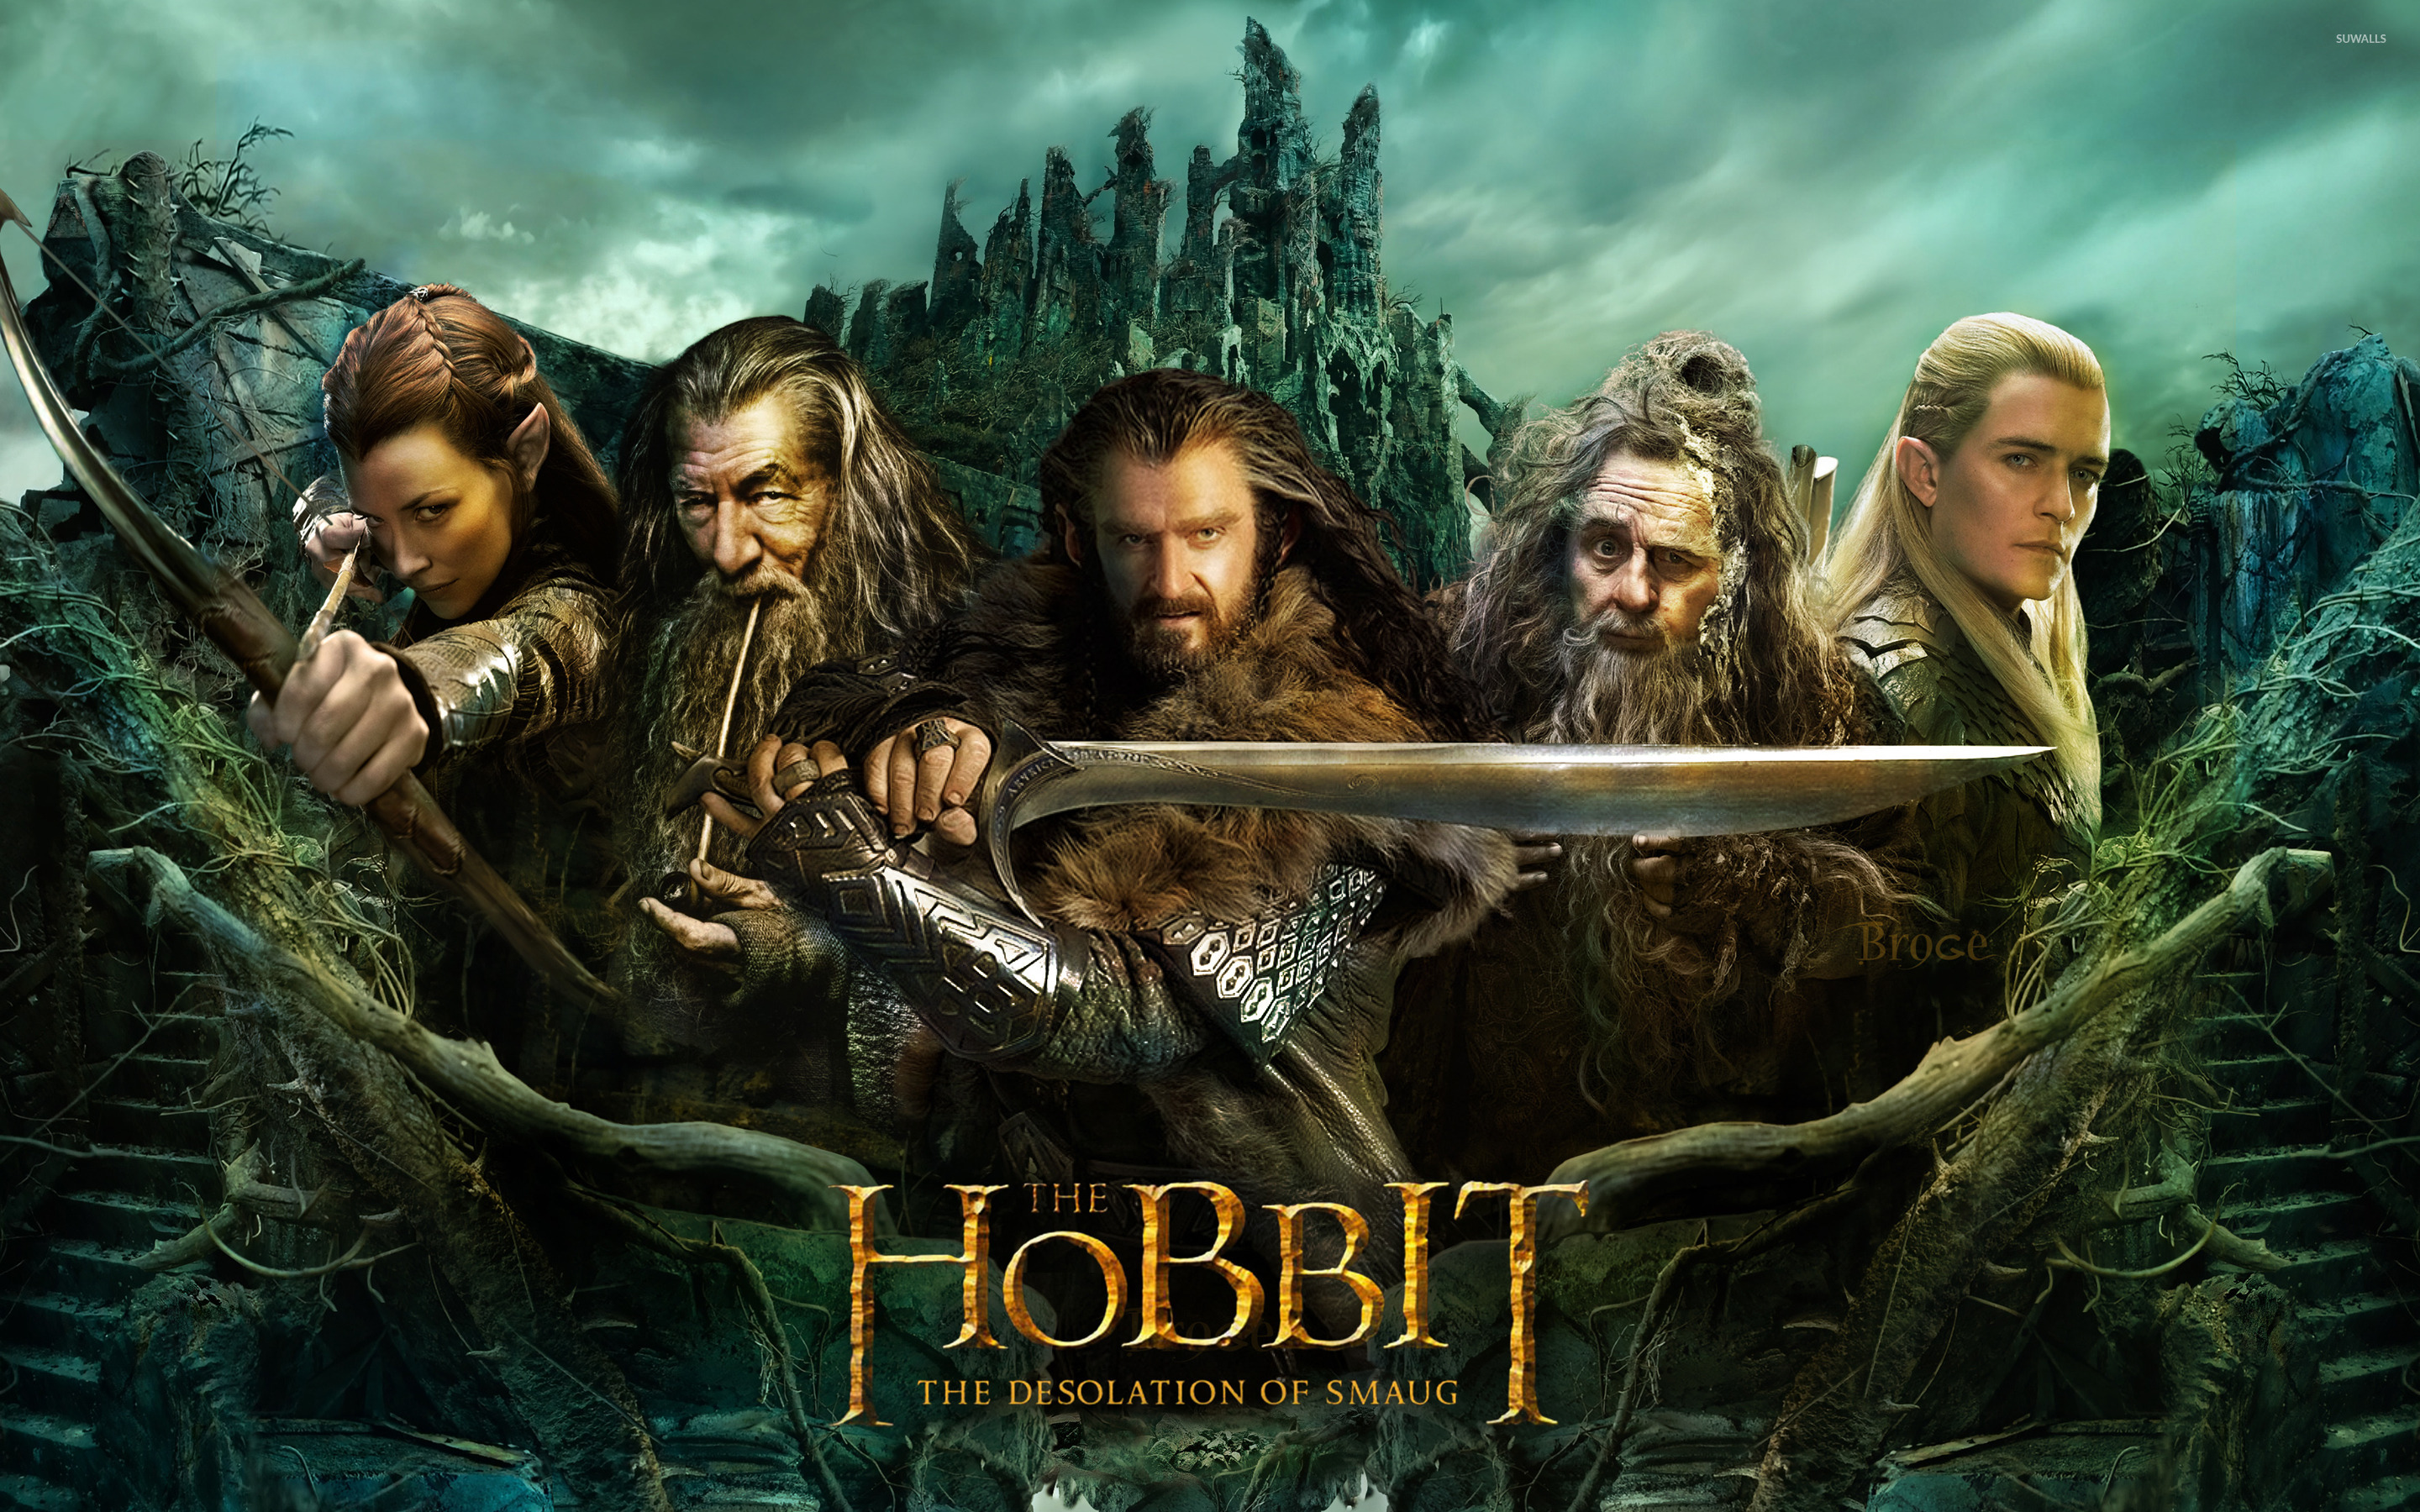 the hobbit movie wallpapers - photo #8